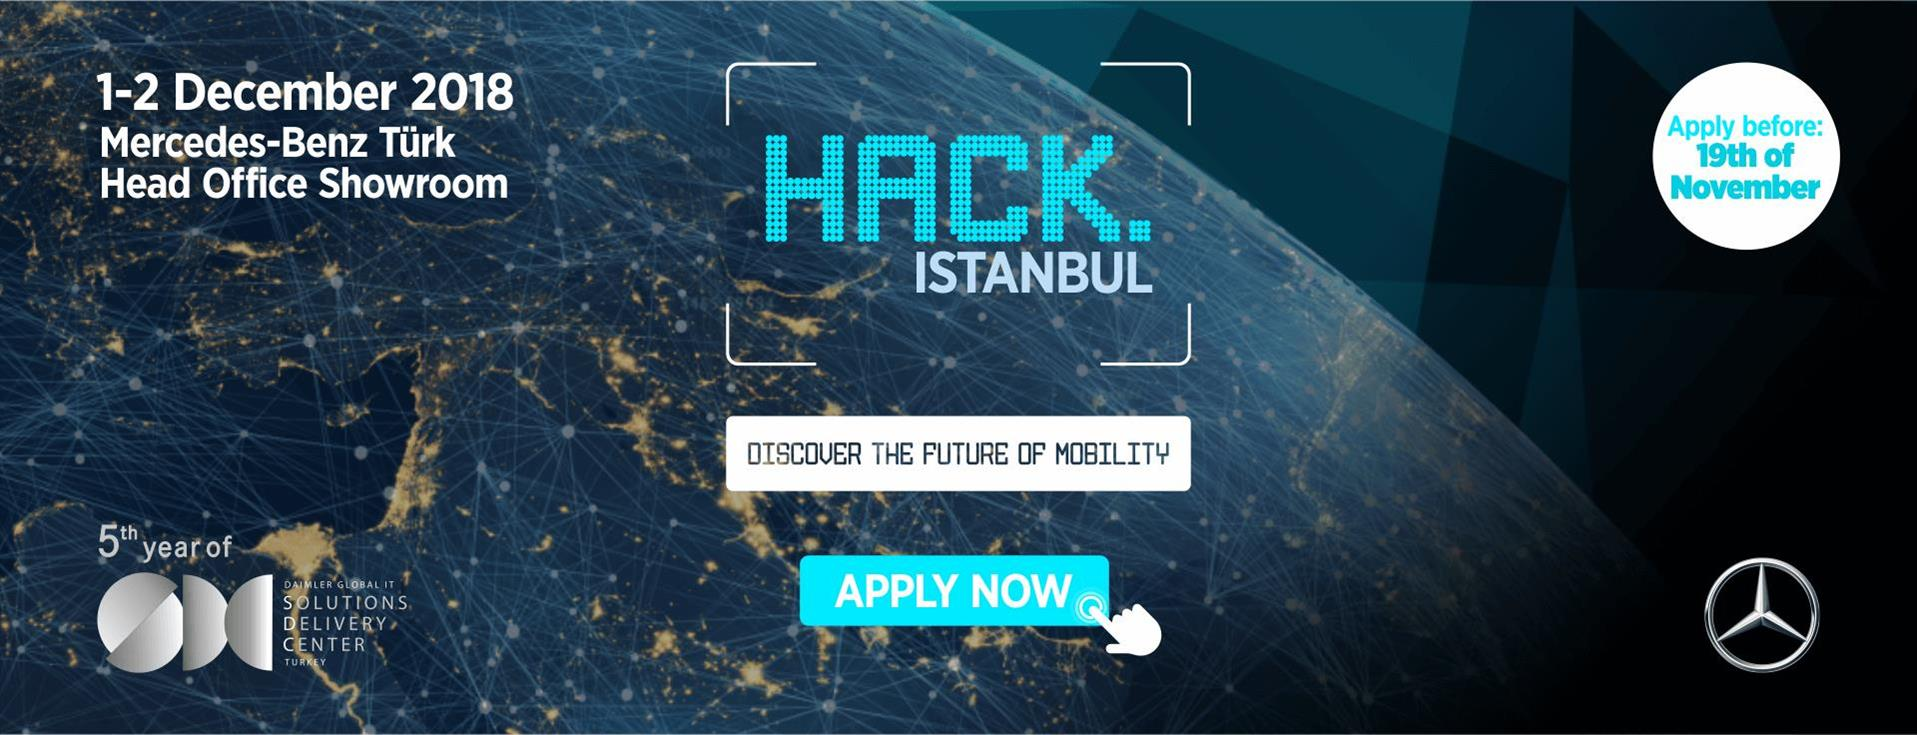 HACK.İSTANBUL